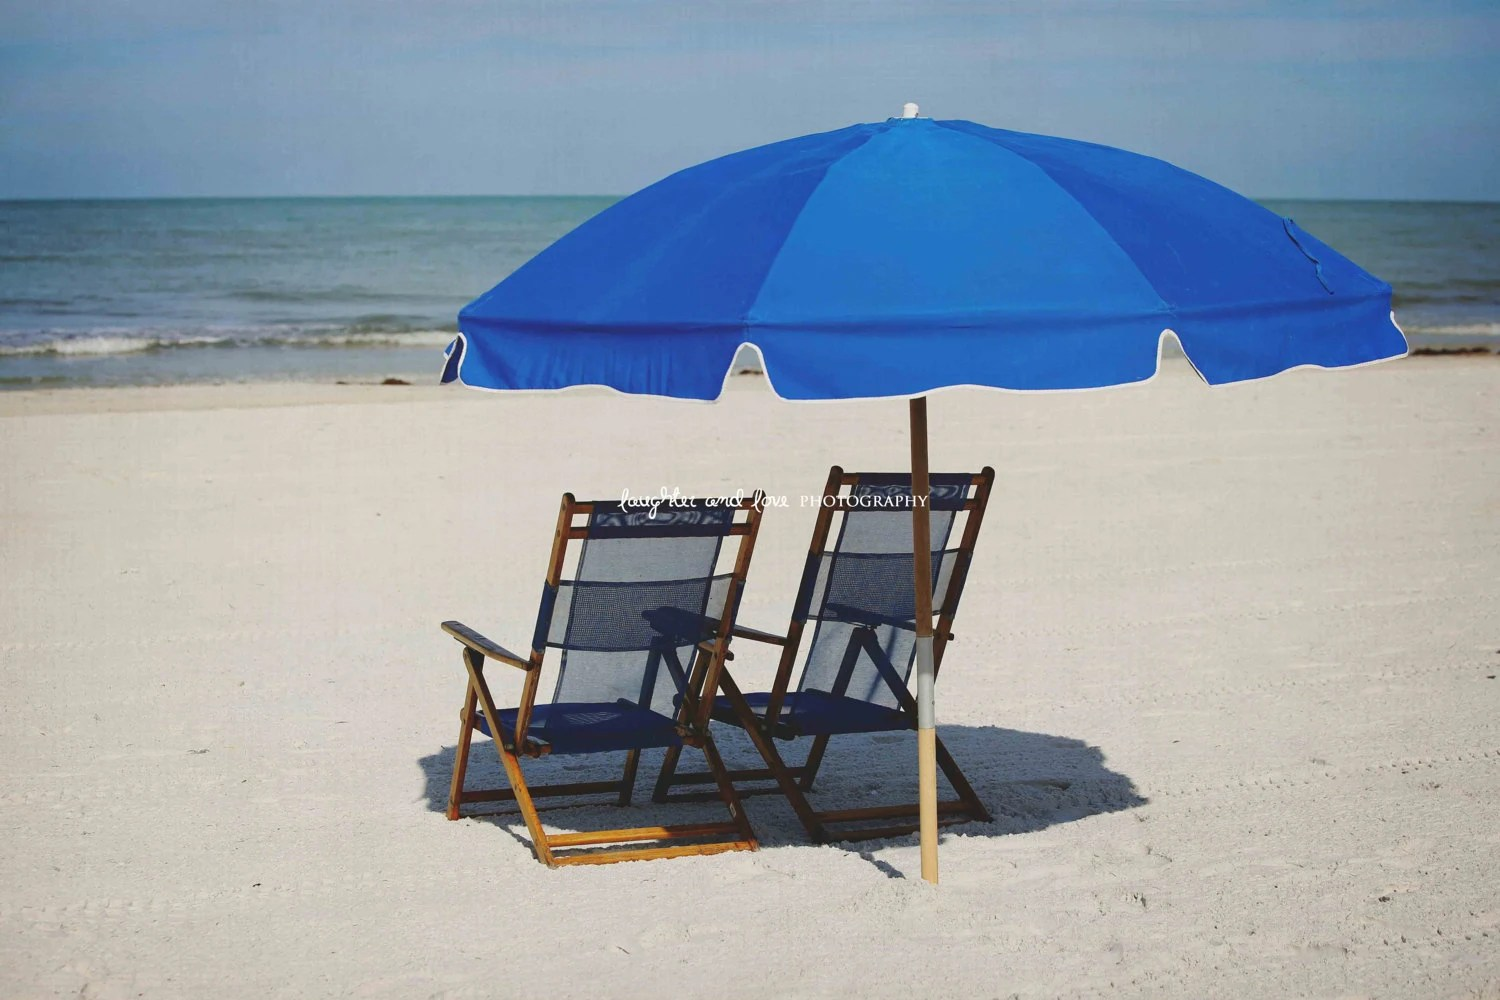 Beach Chairs With Umbrella Blue Beach Chairs Umbrella Photo Beach House Photography Clearwater Ocean Florida Travel Art Tropical Coastal Decor Nautical Home Decor